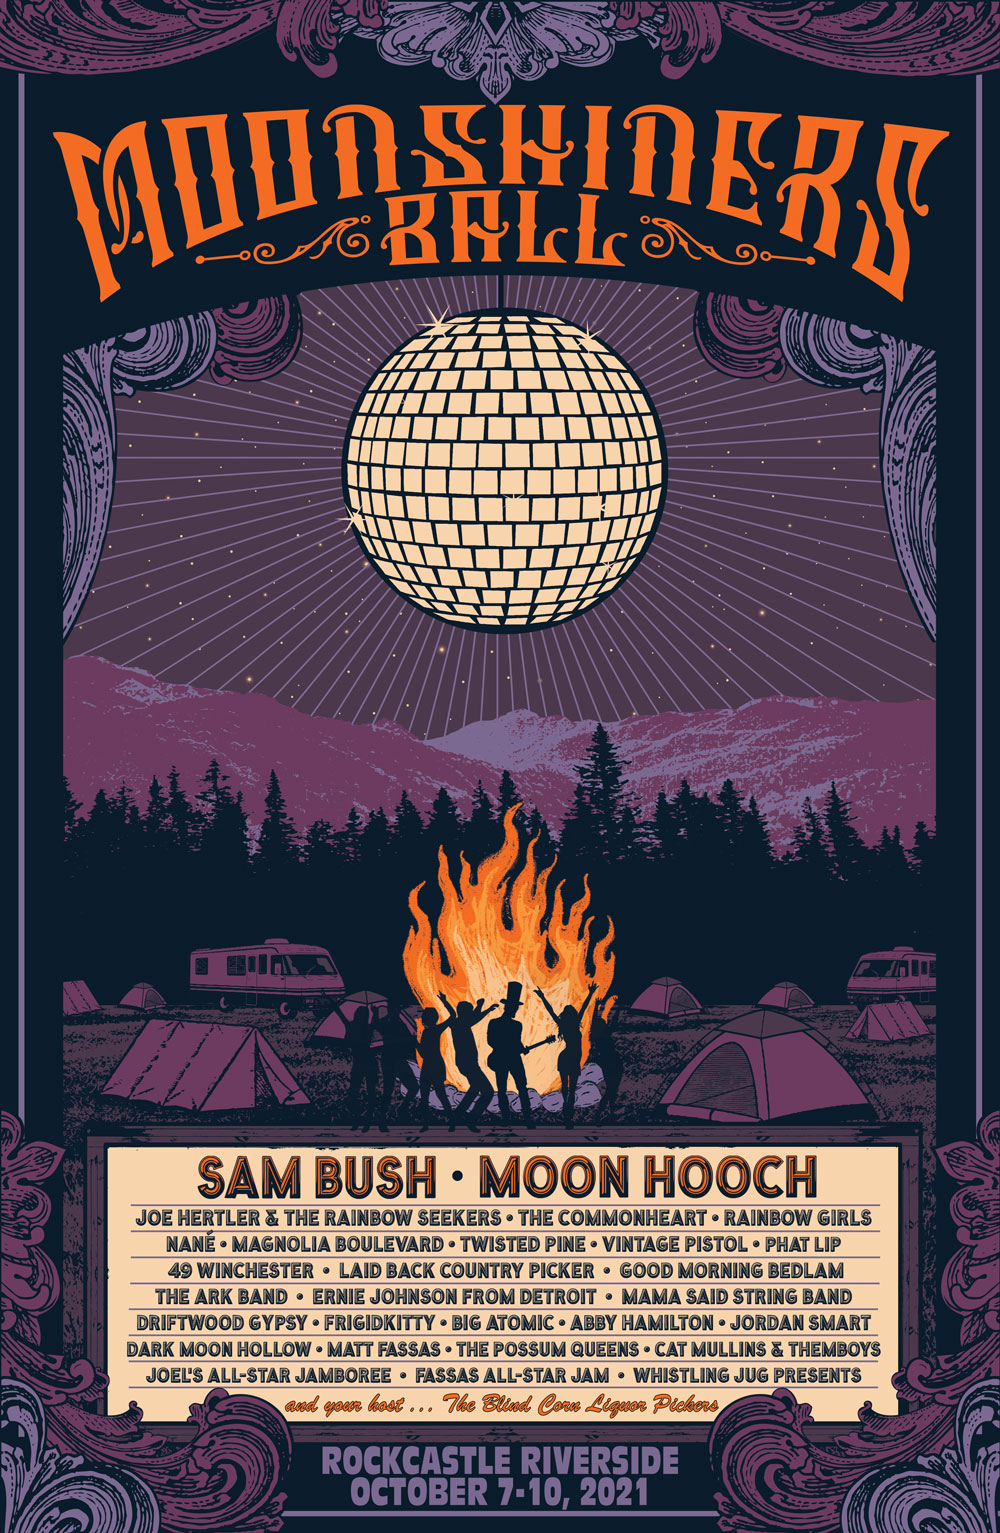 This is the 2021 poster for The Moonshiner's Ball